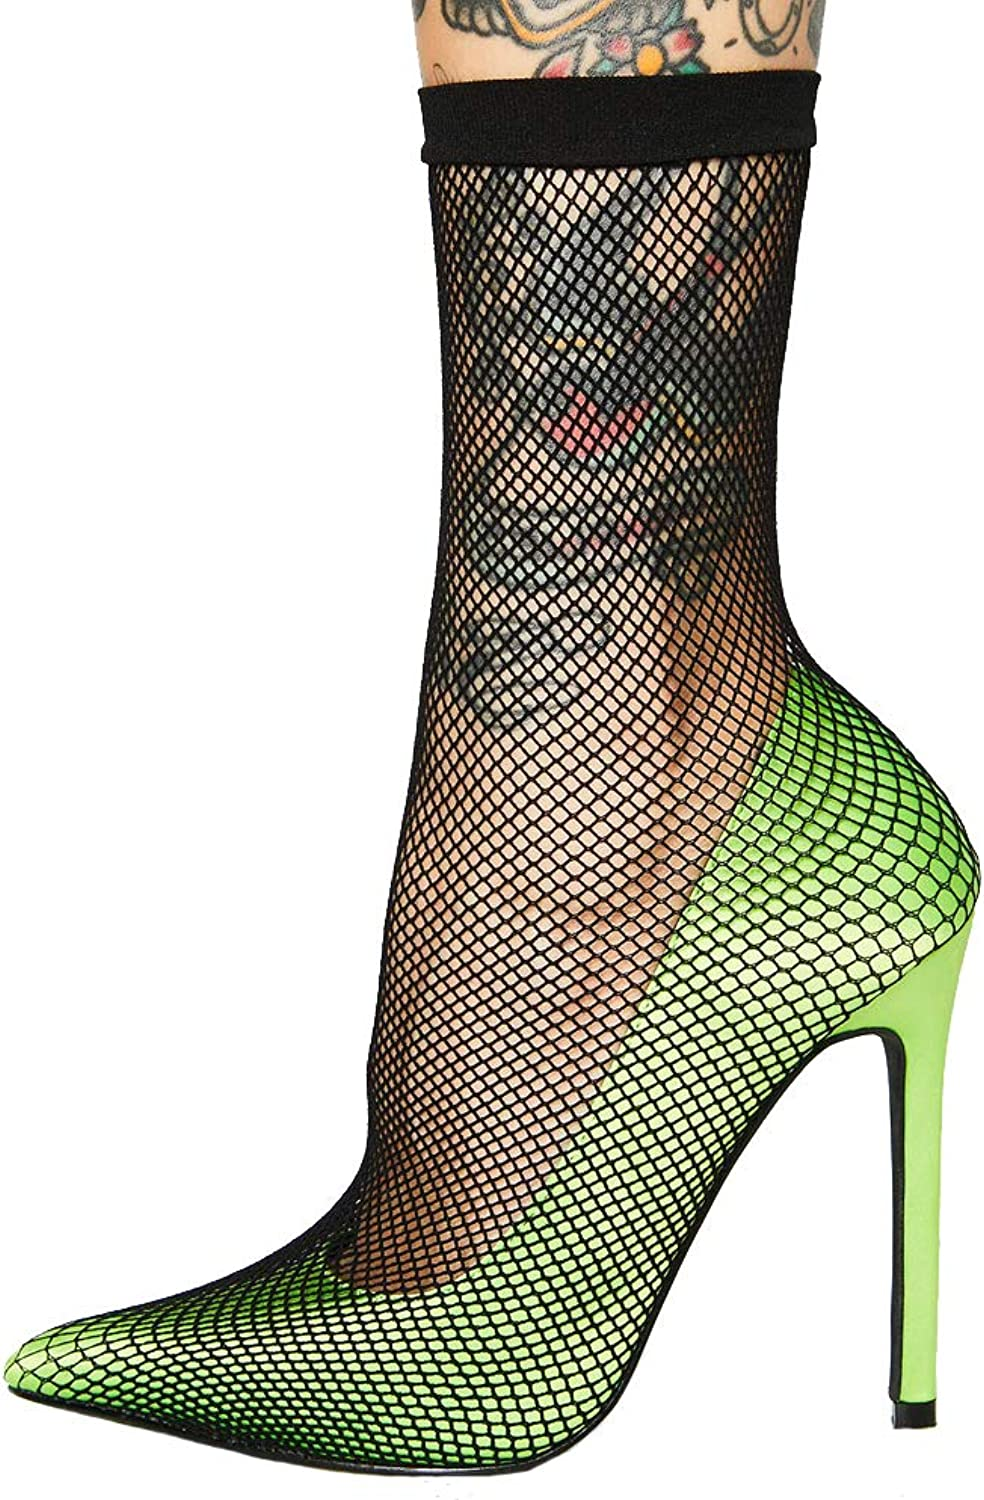 Themost Women's High Heel Pumps Sexy Fishnet Stockings Sandal Sharp Toe Stiletto Heels Pump Dress Party shoes